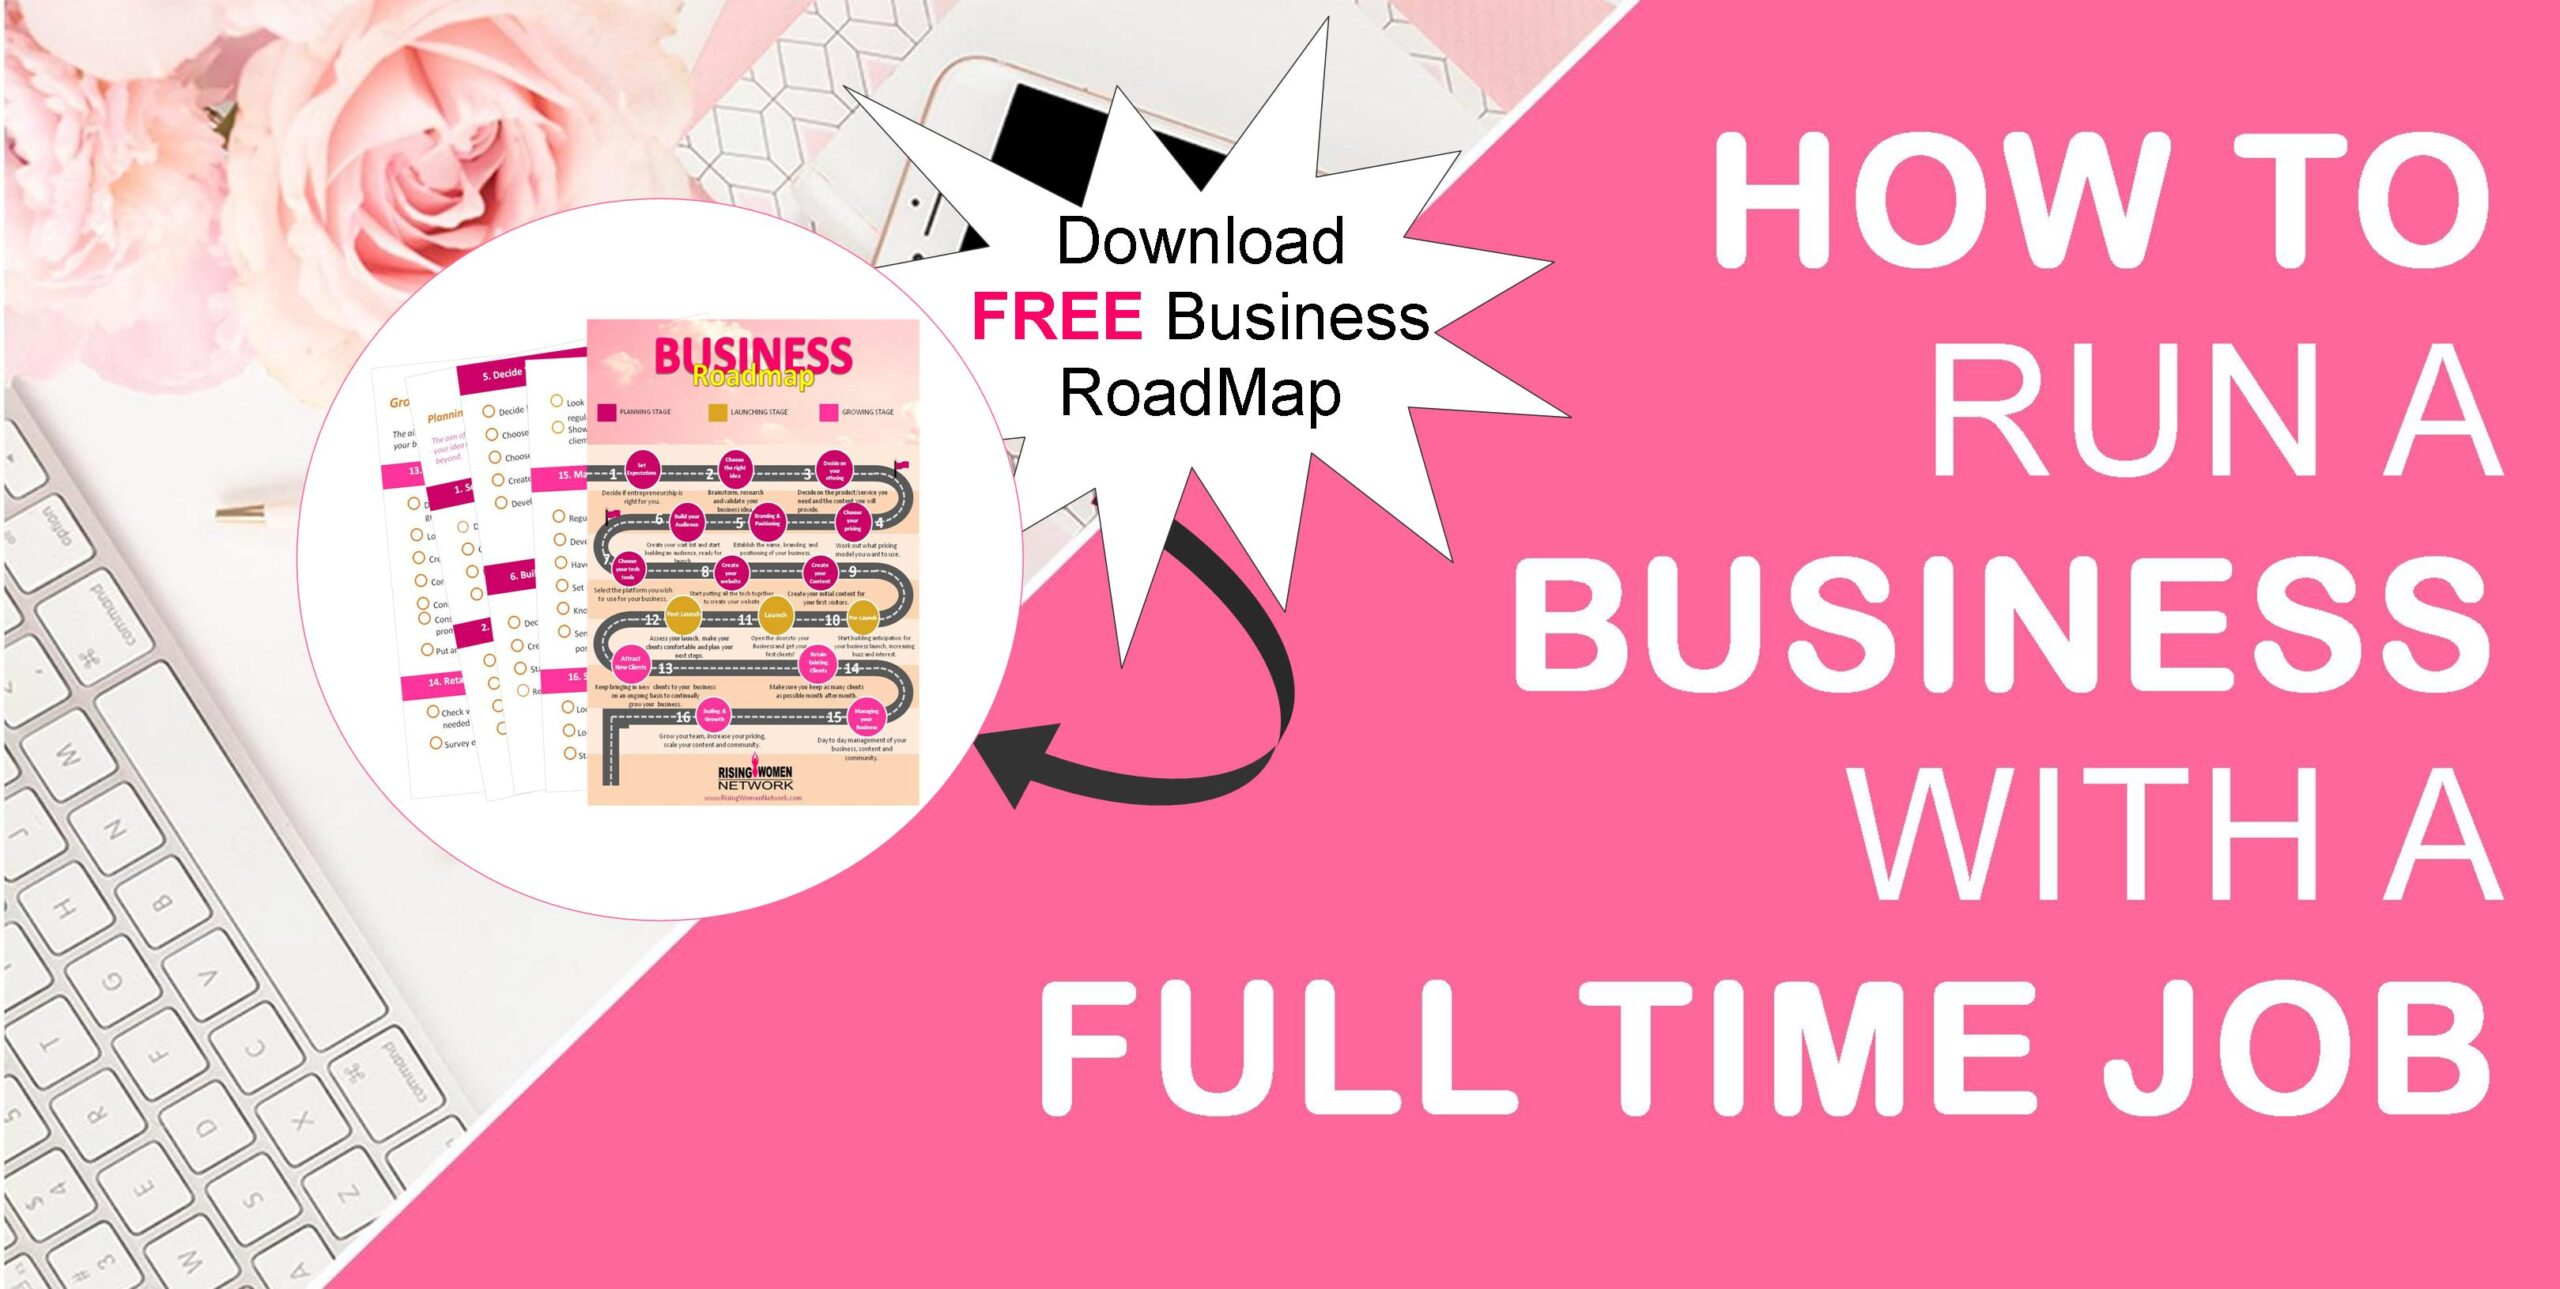 How To Run A Business With A Full Time Job